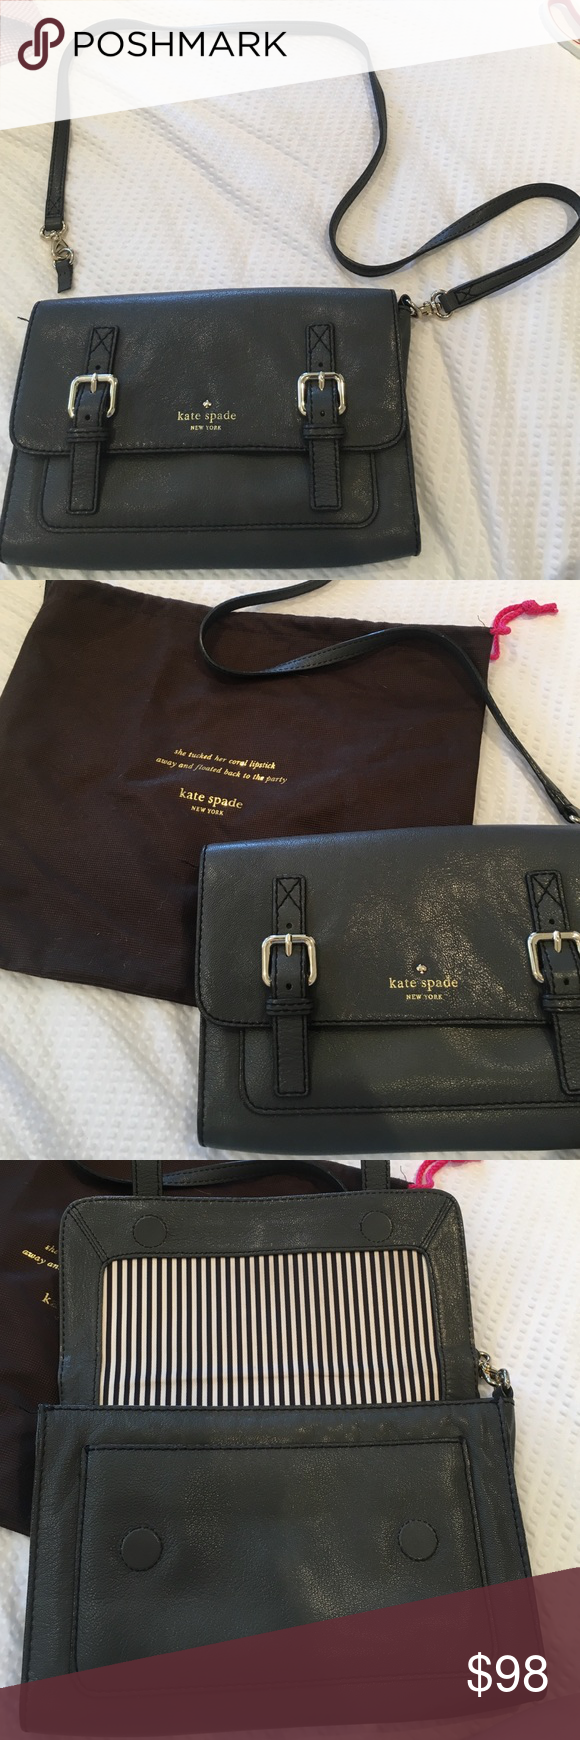 Kate Spade charcoal cross body bag Strap is broken but otherwise in great condition. Comes with dust bag. kate spade Bags Crossbody Bags